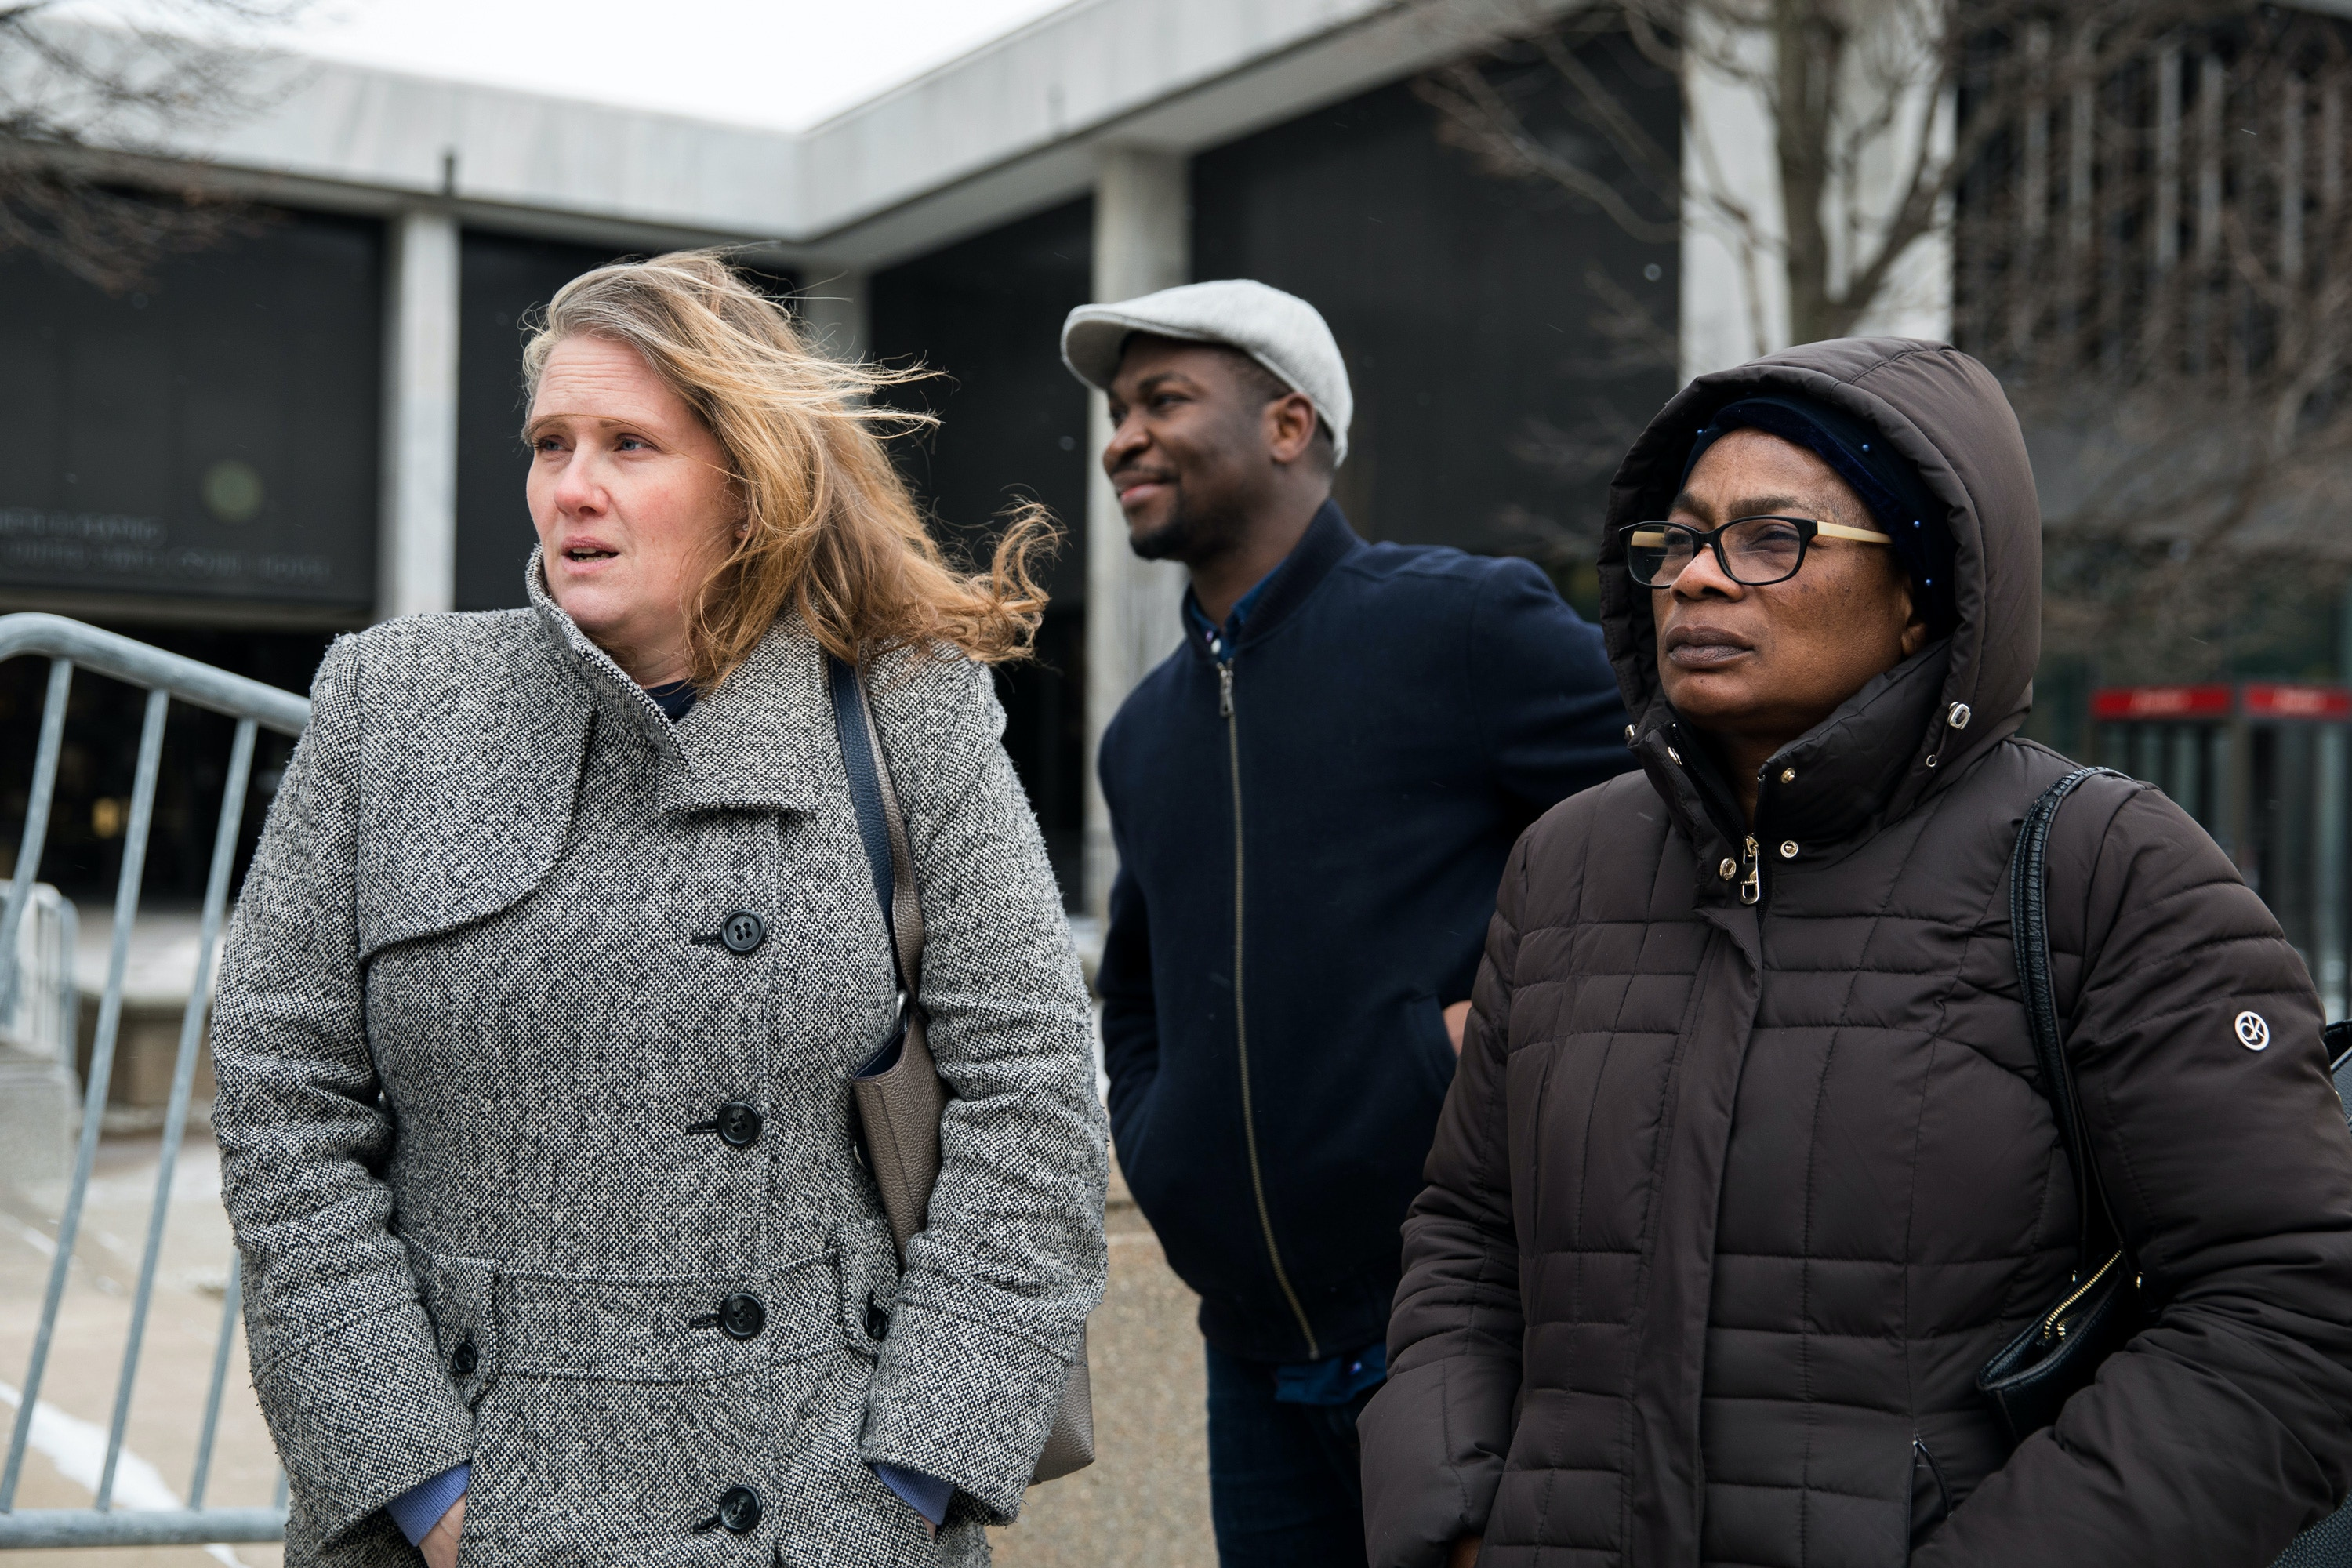 Lisa Pepper-Ngoran, Kimino's wife stands with friends and supporters, Nacouban Toure and Therese McGee outside the U.S. District Court following her husband's hearing in Rochester, NY on Monday.